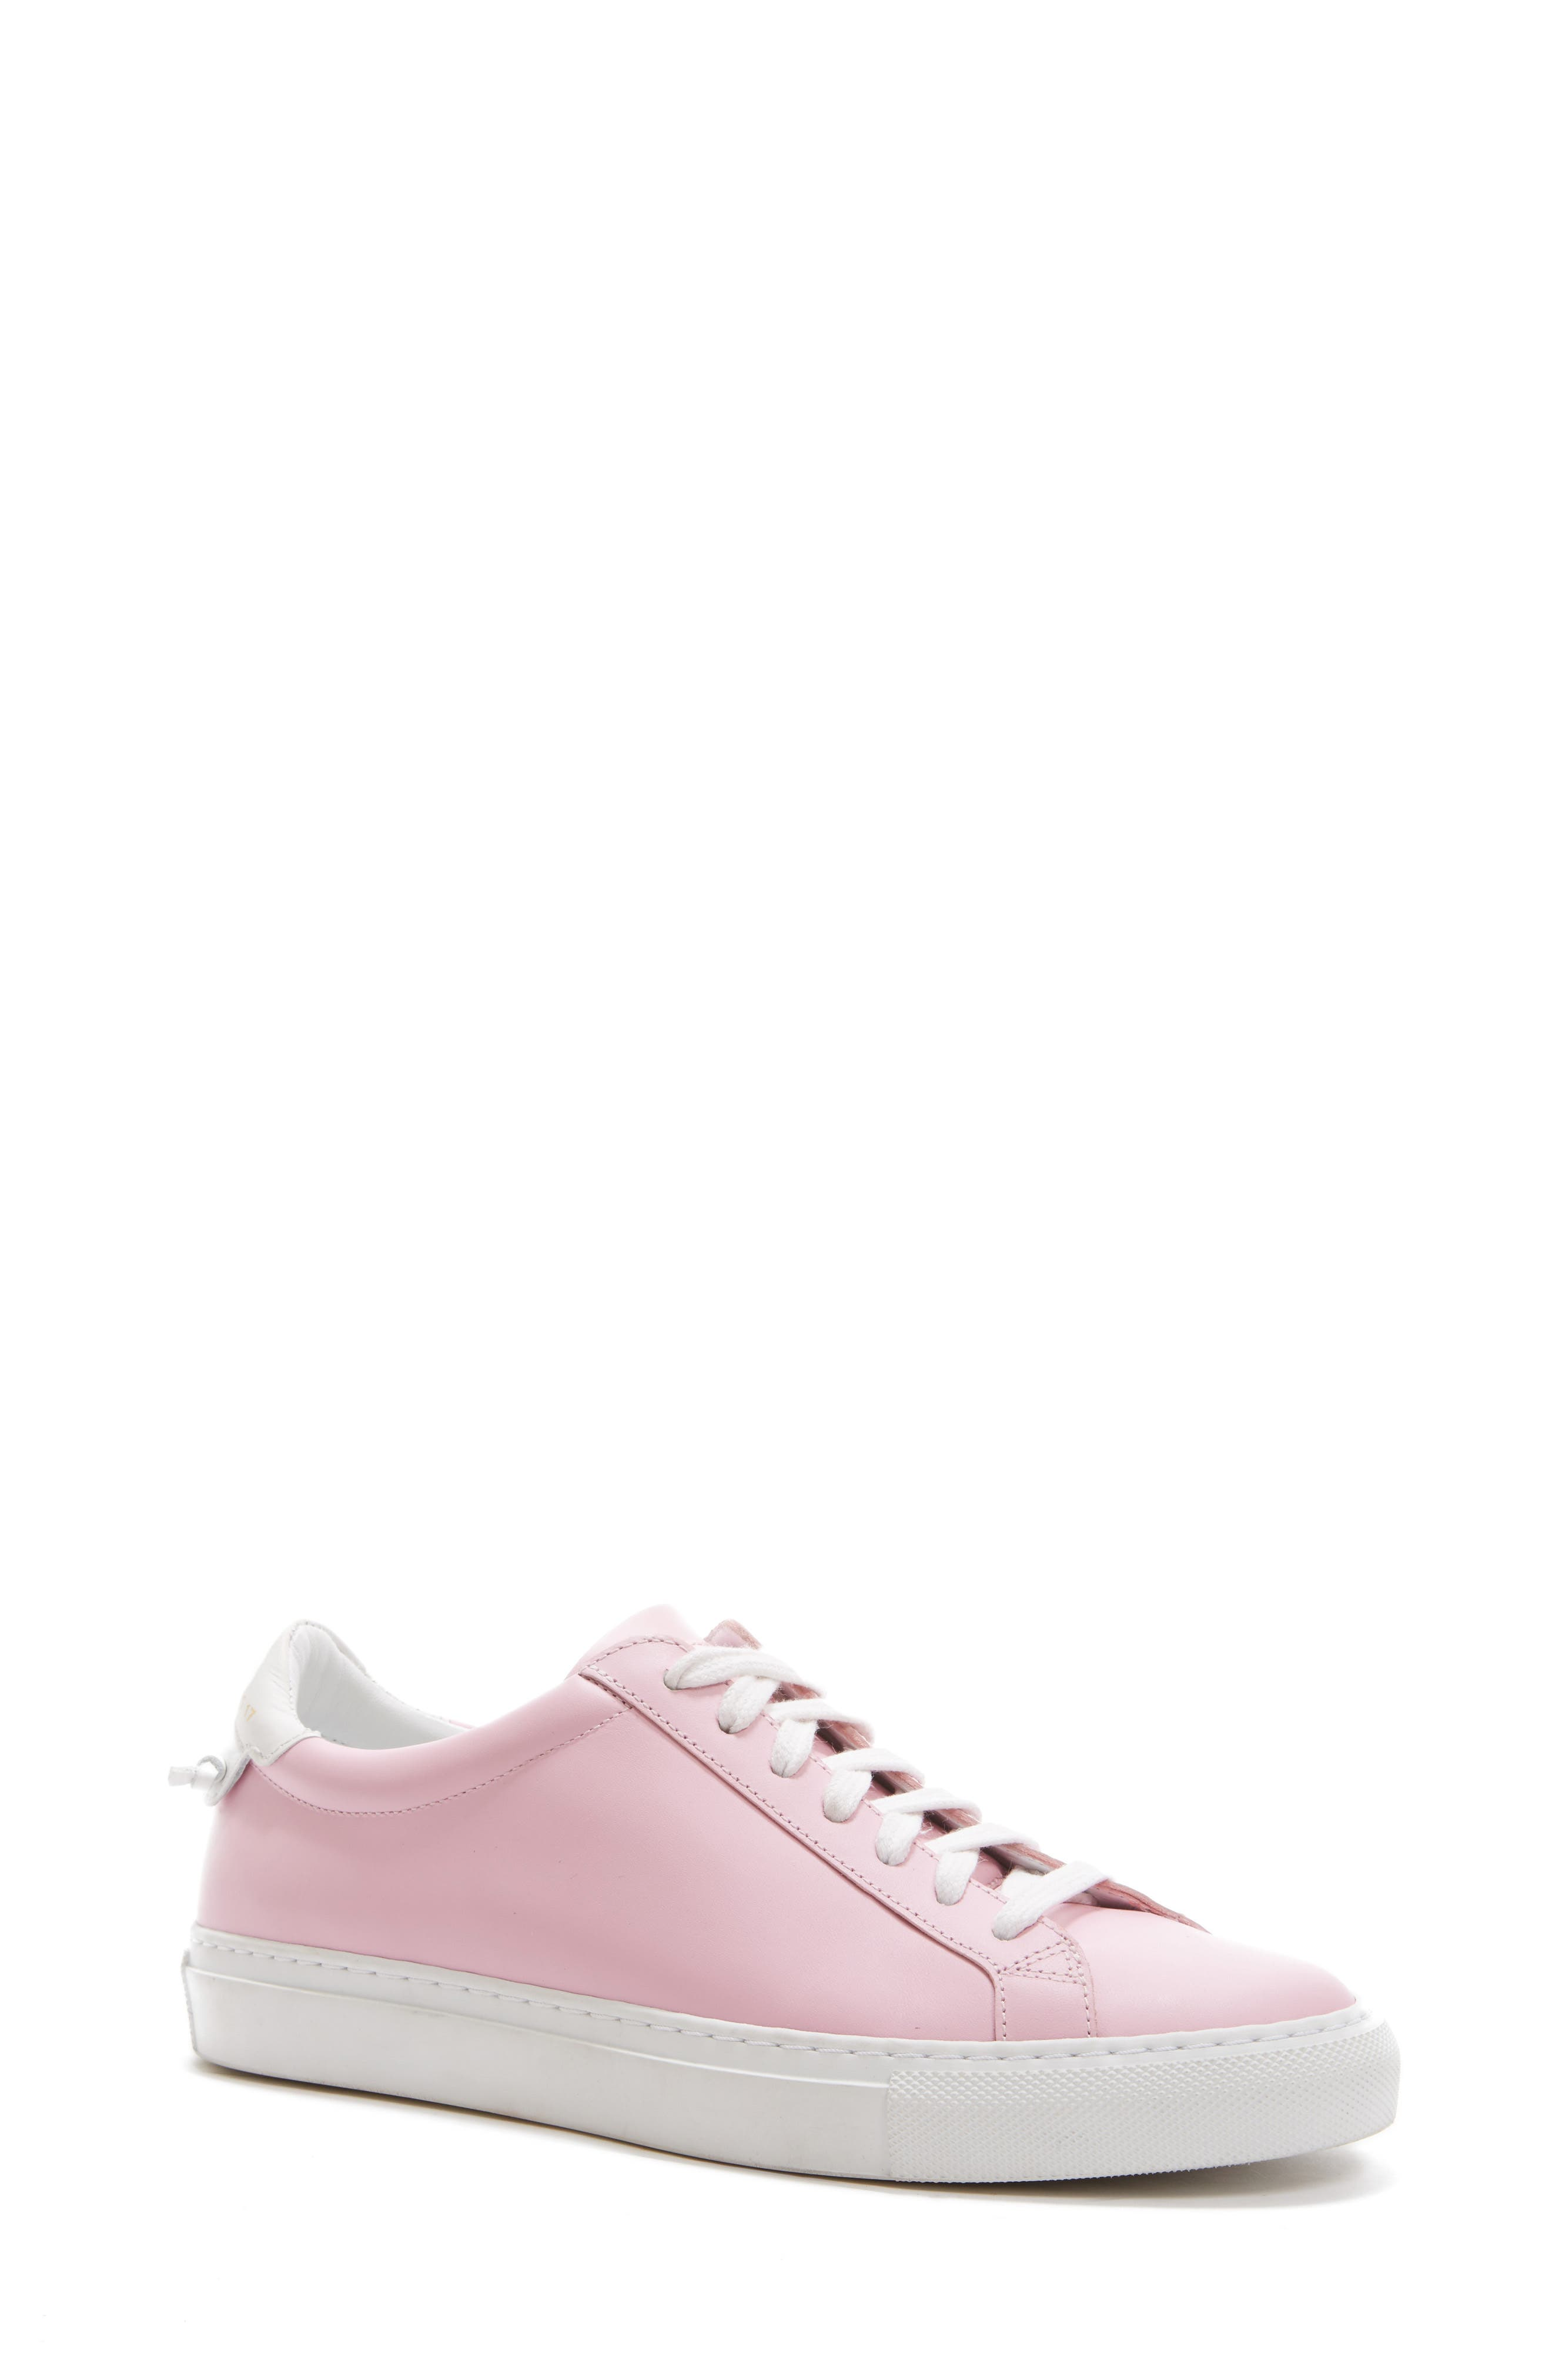 Alternate Image 1 Selected - Givenchy Low Sneaker (Women)